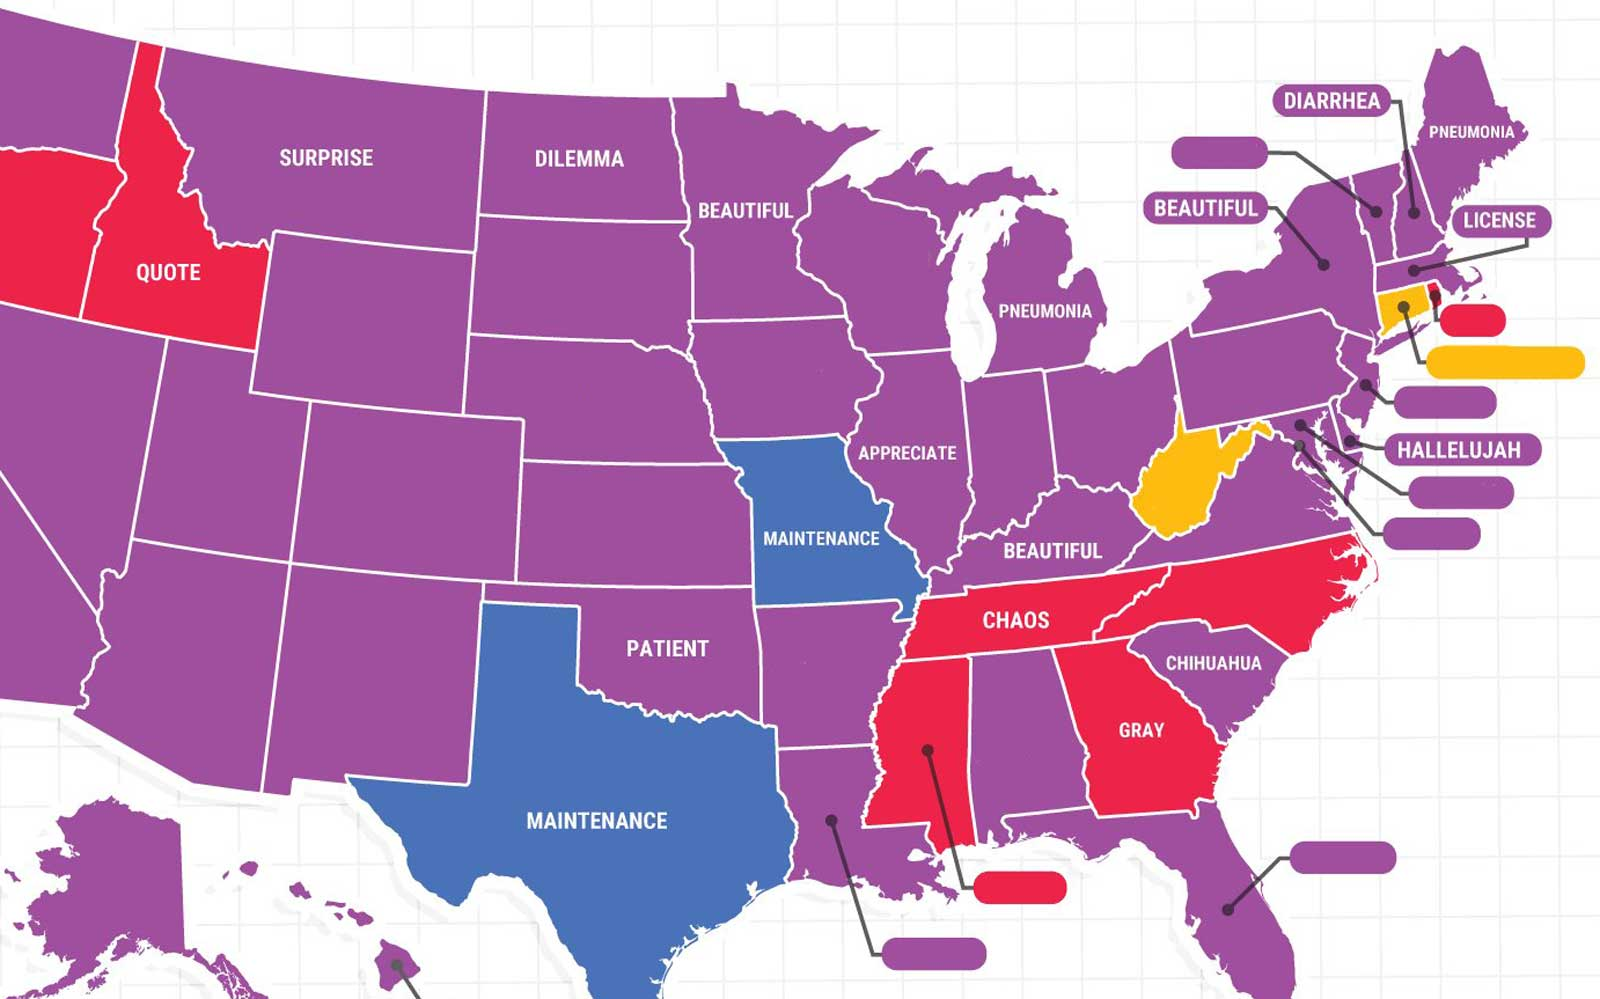 What is the most misspelled word in your state? This map will tell you